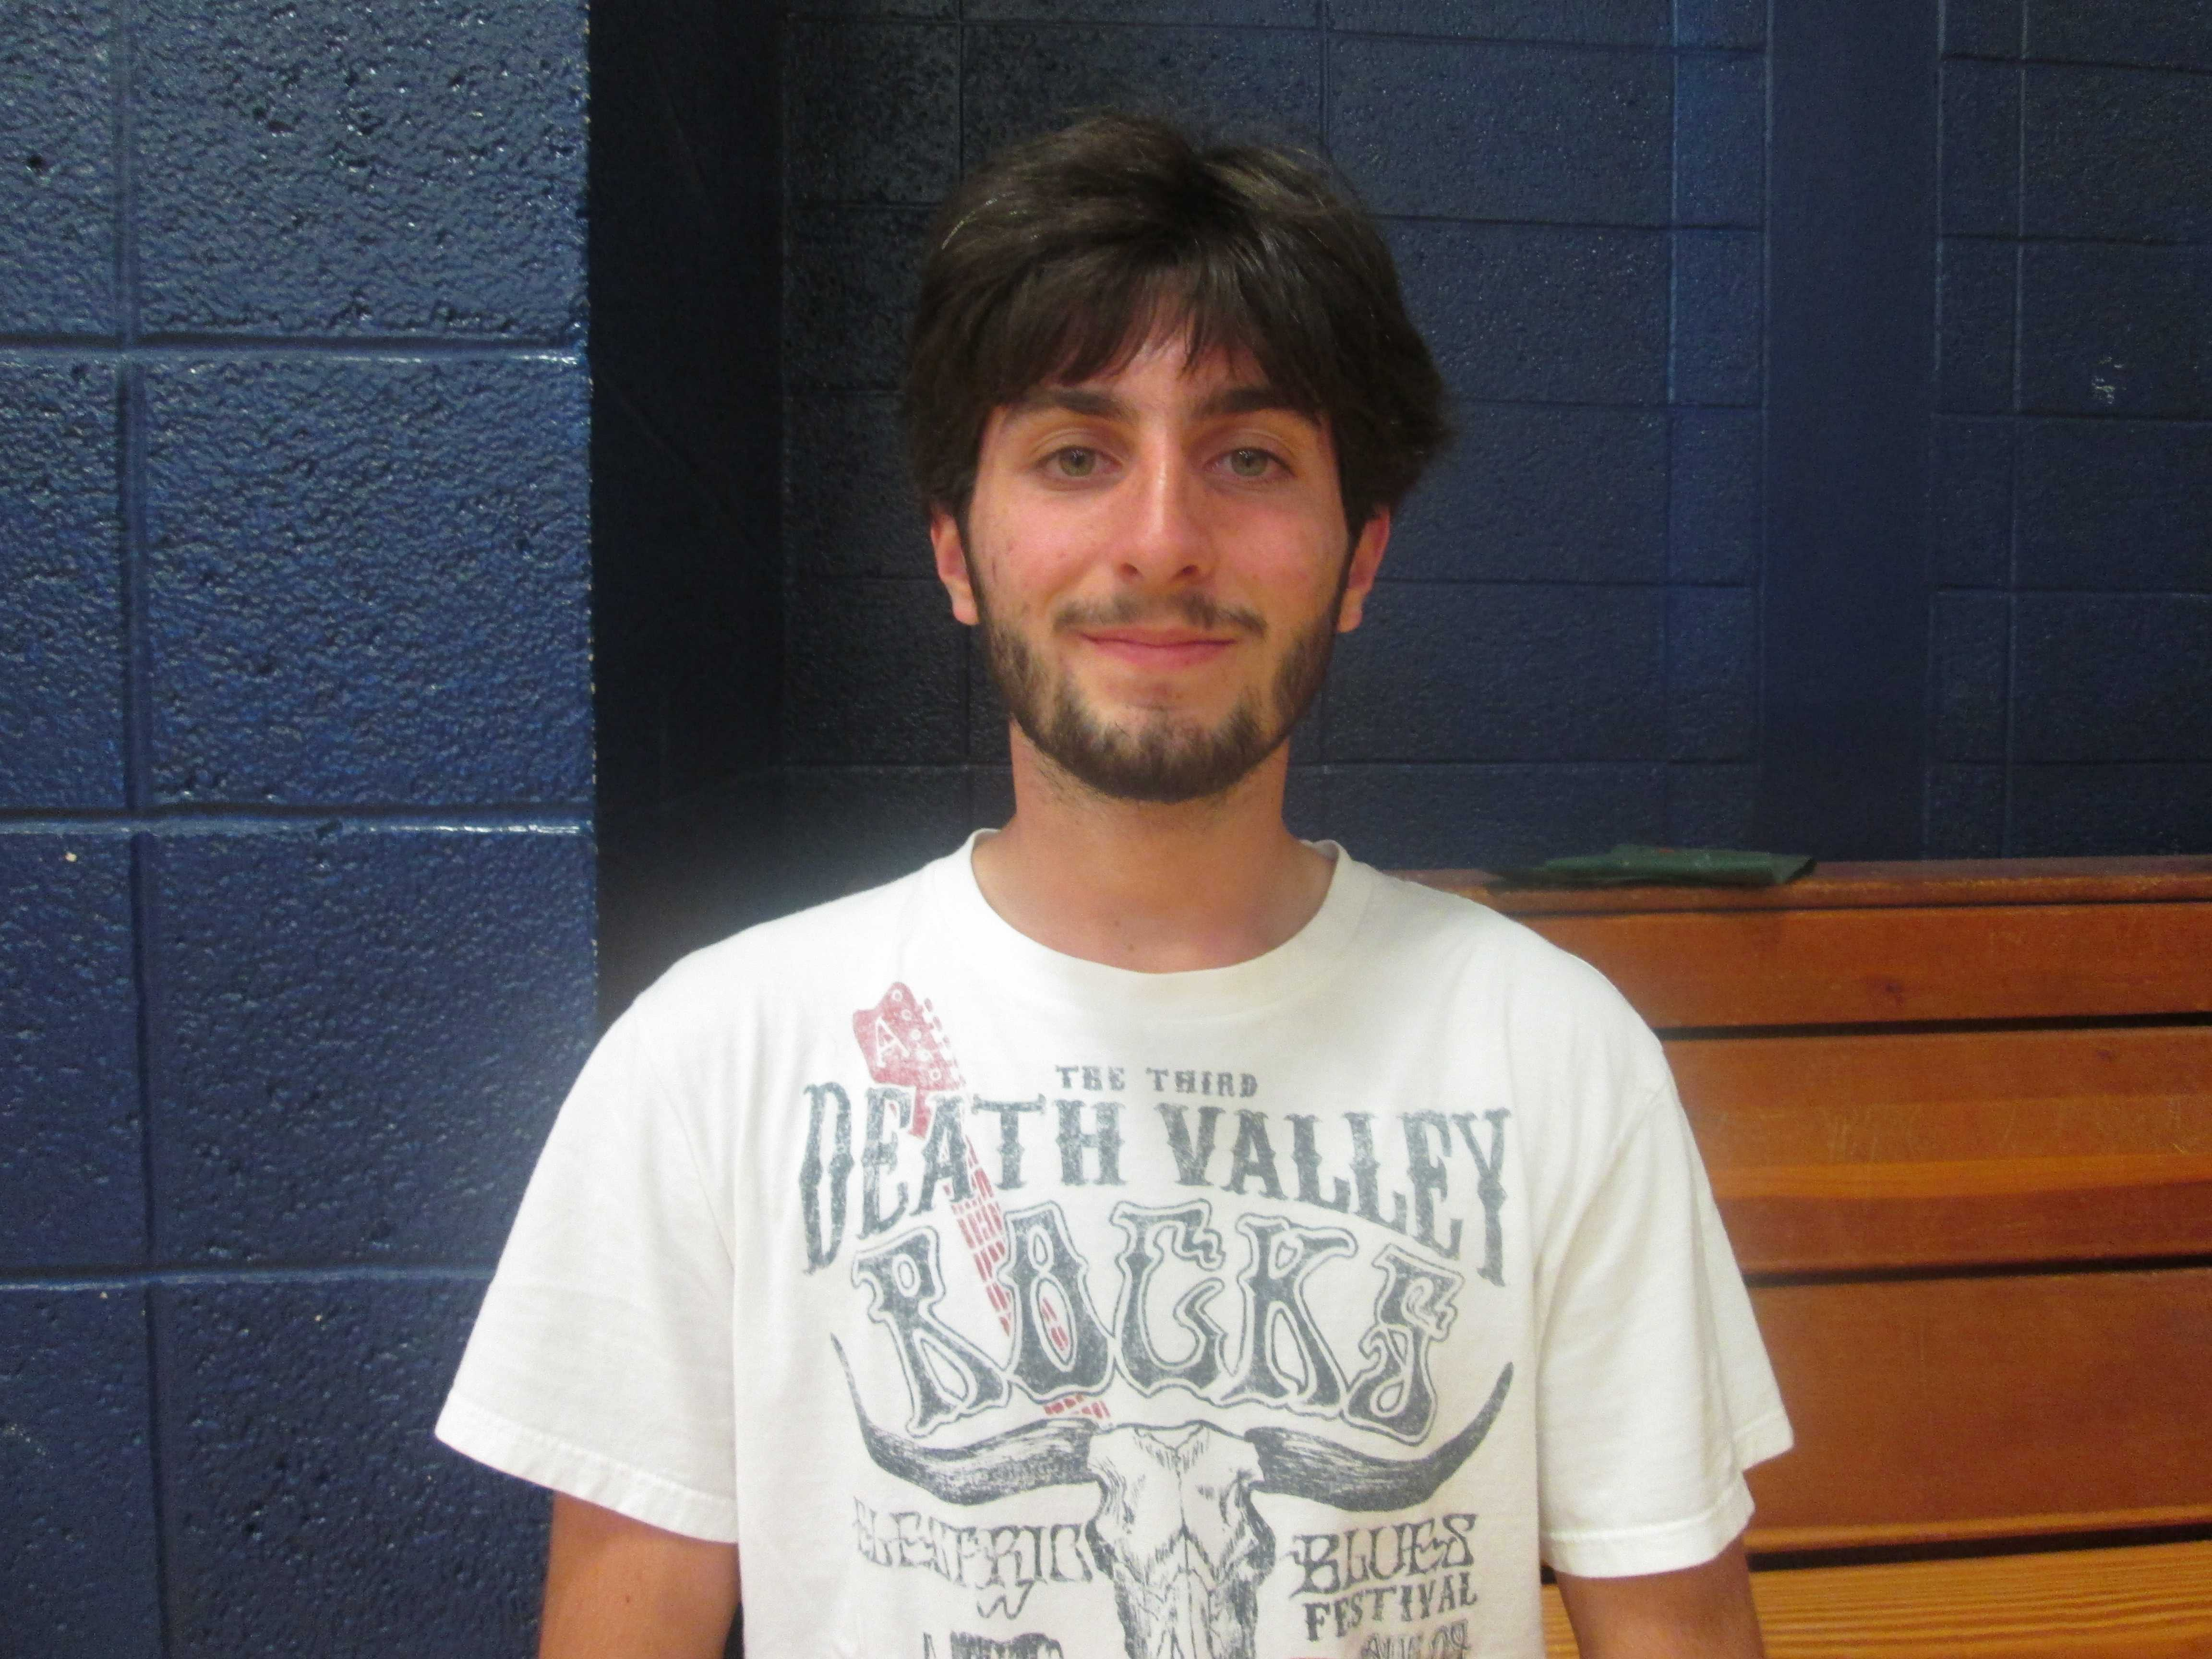 Sam Shapiro - Palm Beach State College where he will be majoring in Business Administration. Sam chose this school because his family is moving down there, and he is familiar with the area since he has been going for years.